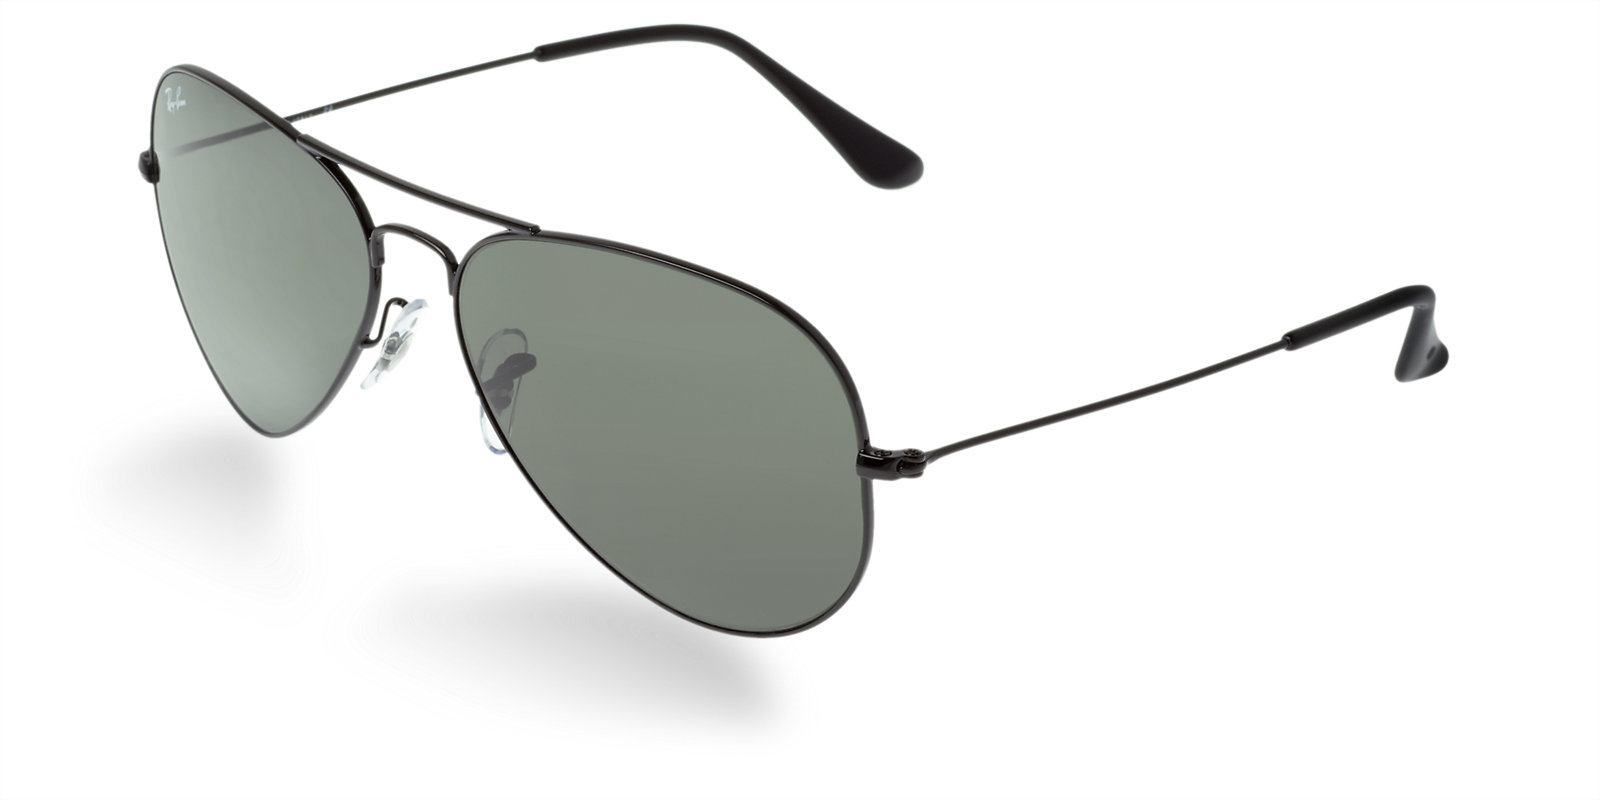 e5e68bc679 Previous  Next. Previous  Next. RAY-BAN RB3026 L2821 BLACK AVIATOR II LARGE  62MM SUNGLASSES